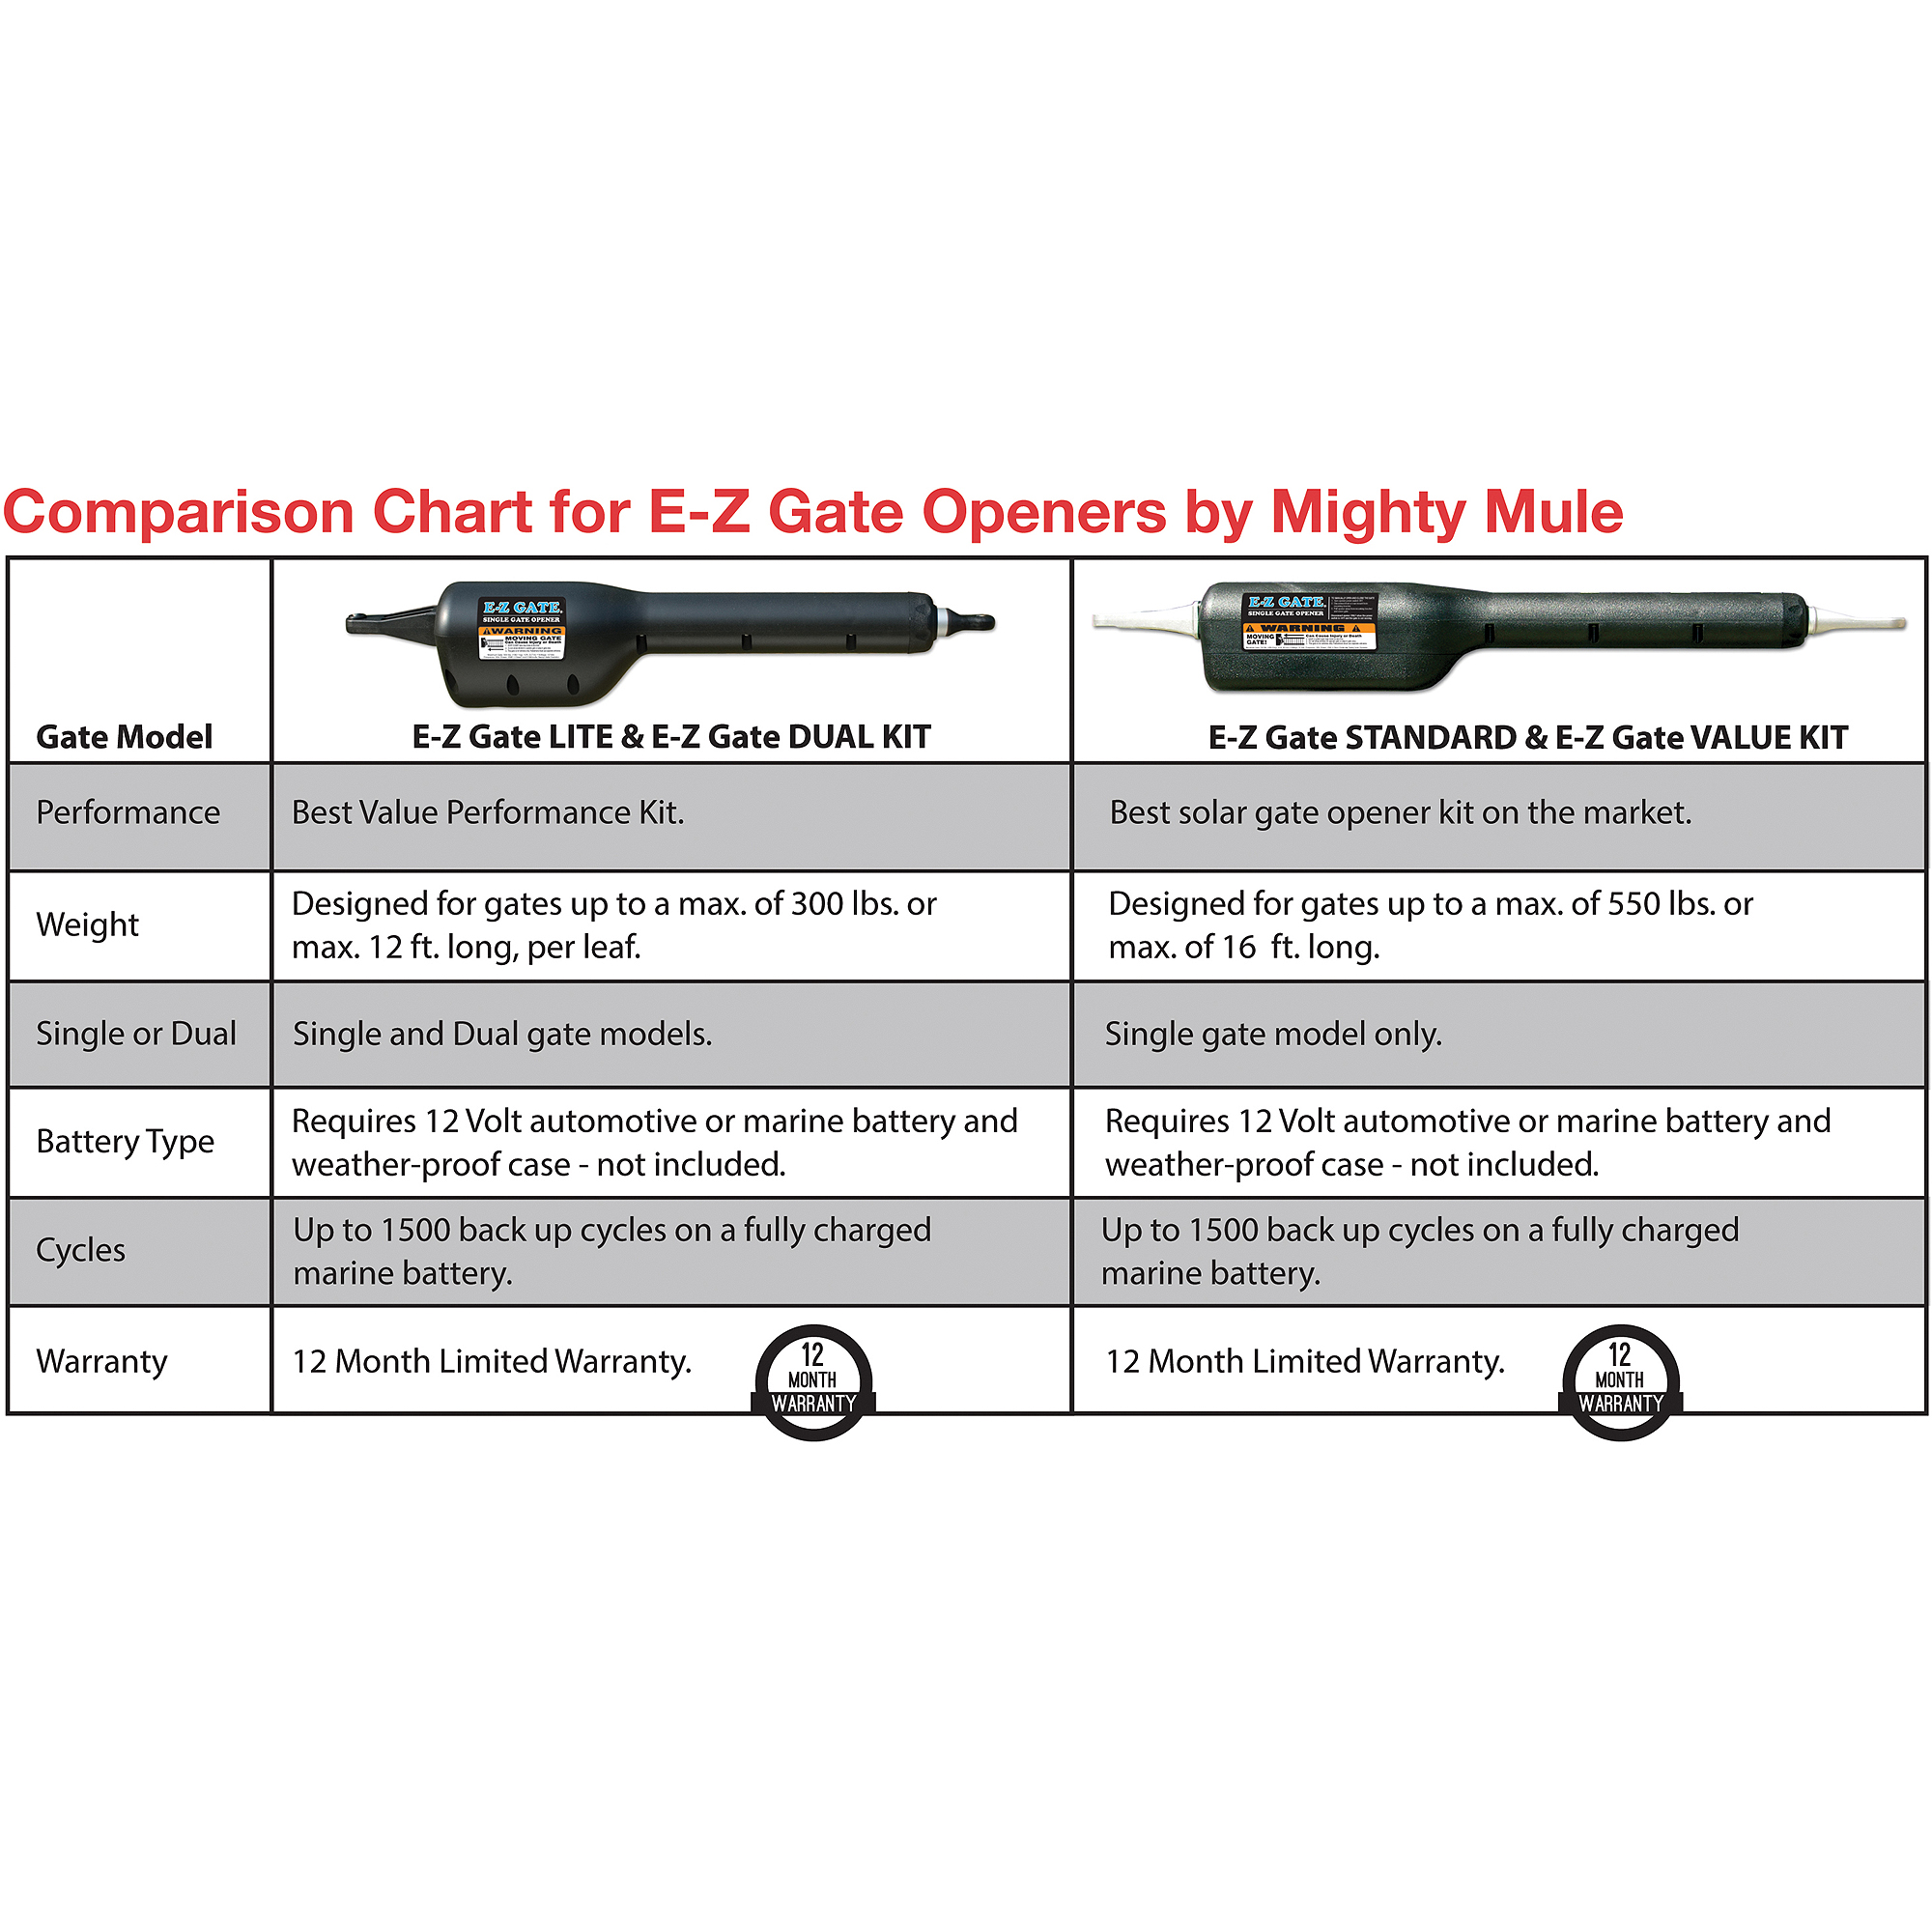 E-Z Gate Light Automatic Gate Opener by Mighty Mule - Walmart.com Mighty Mule Gate Opener Two Battery Wiring Diagram on mighty mule 350 wiring diagram, mighty mule 502 wiring diagram, gto wiring diagram, mighty mule gate latch wiring diagram, mighty mule gate opener accessories, mighty mule gate opener control panel,